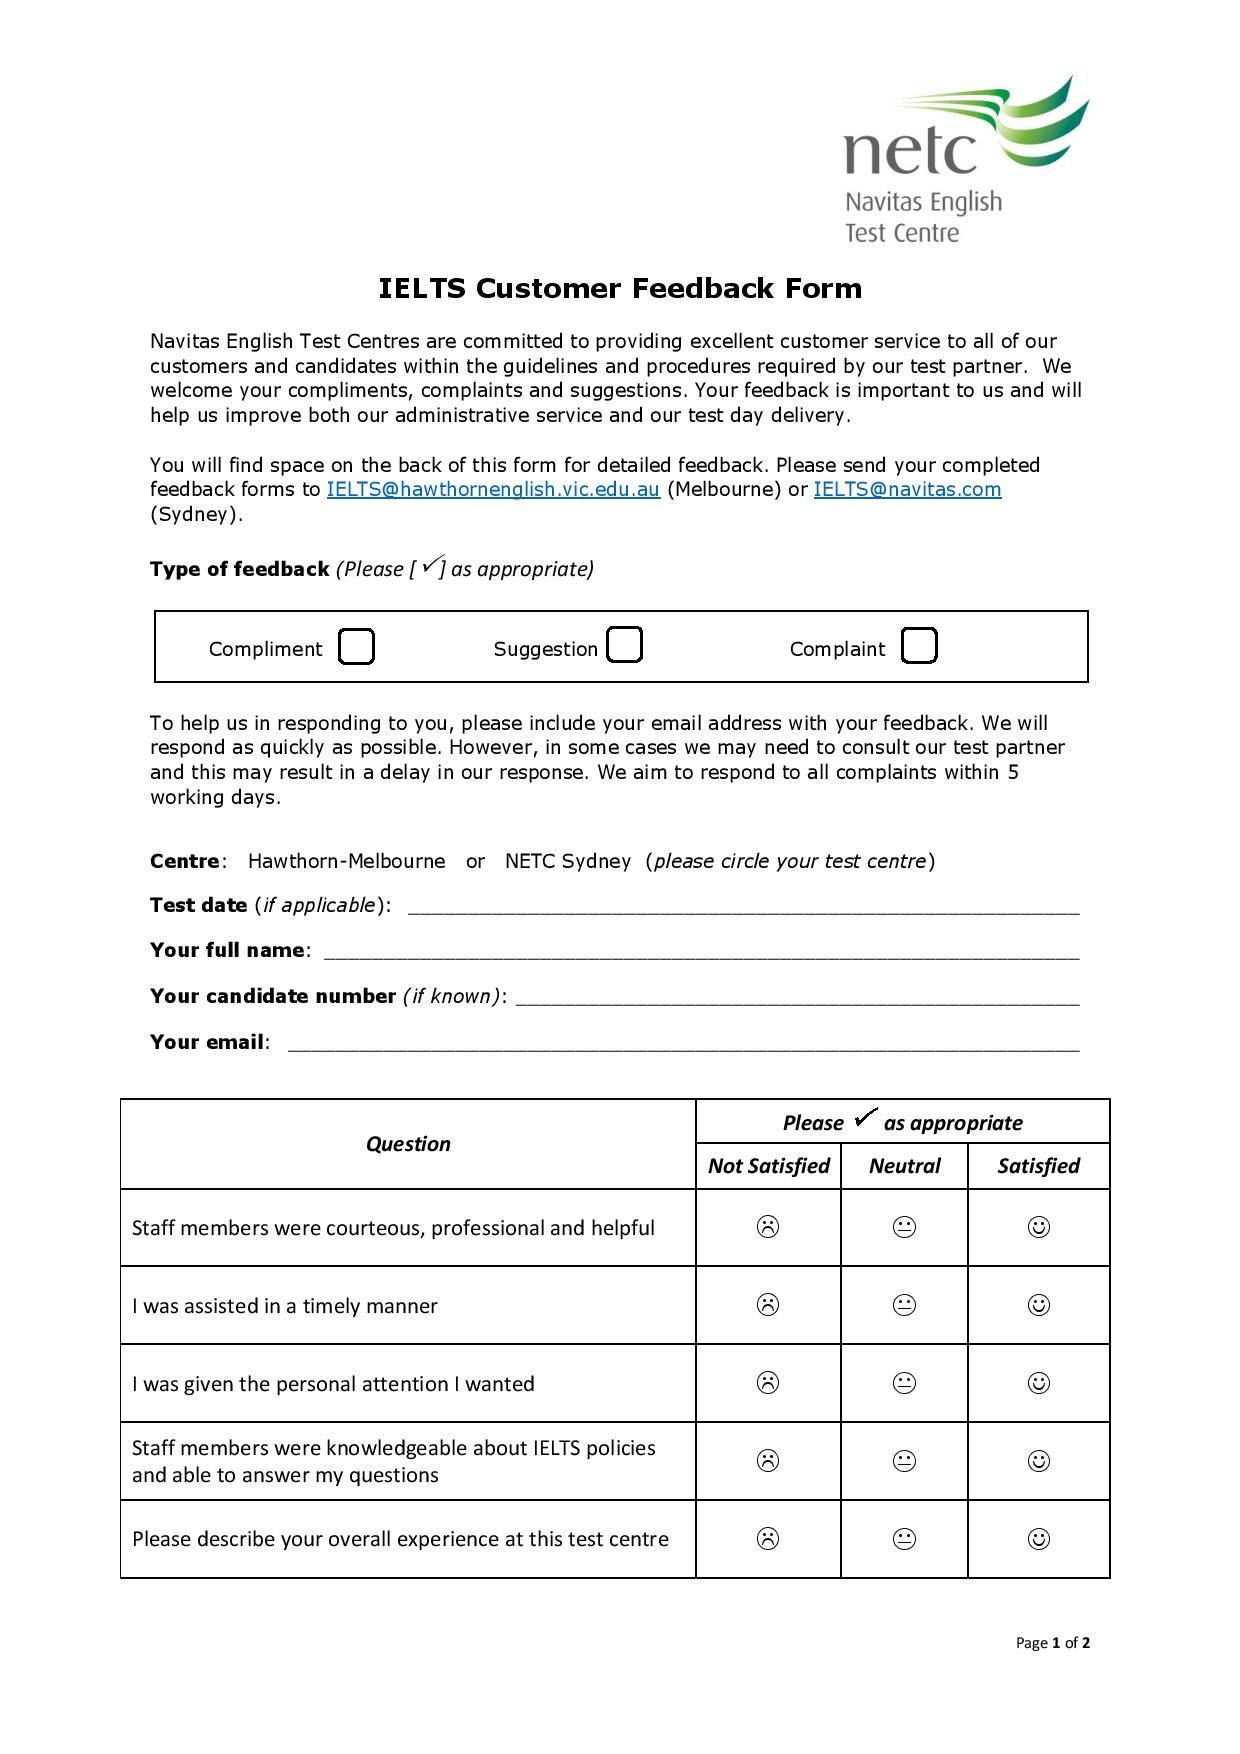 ielts feedback form page 001